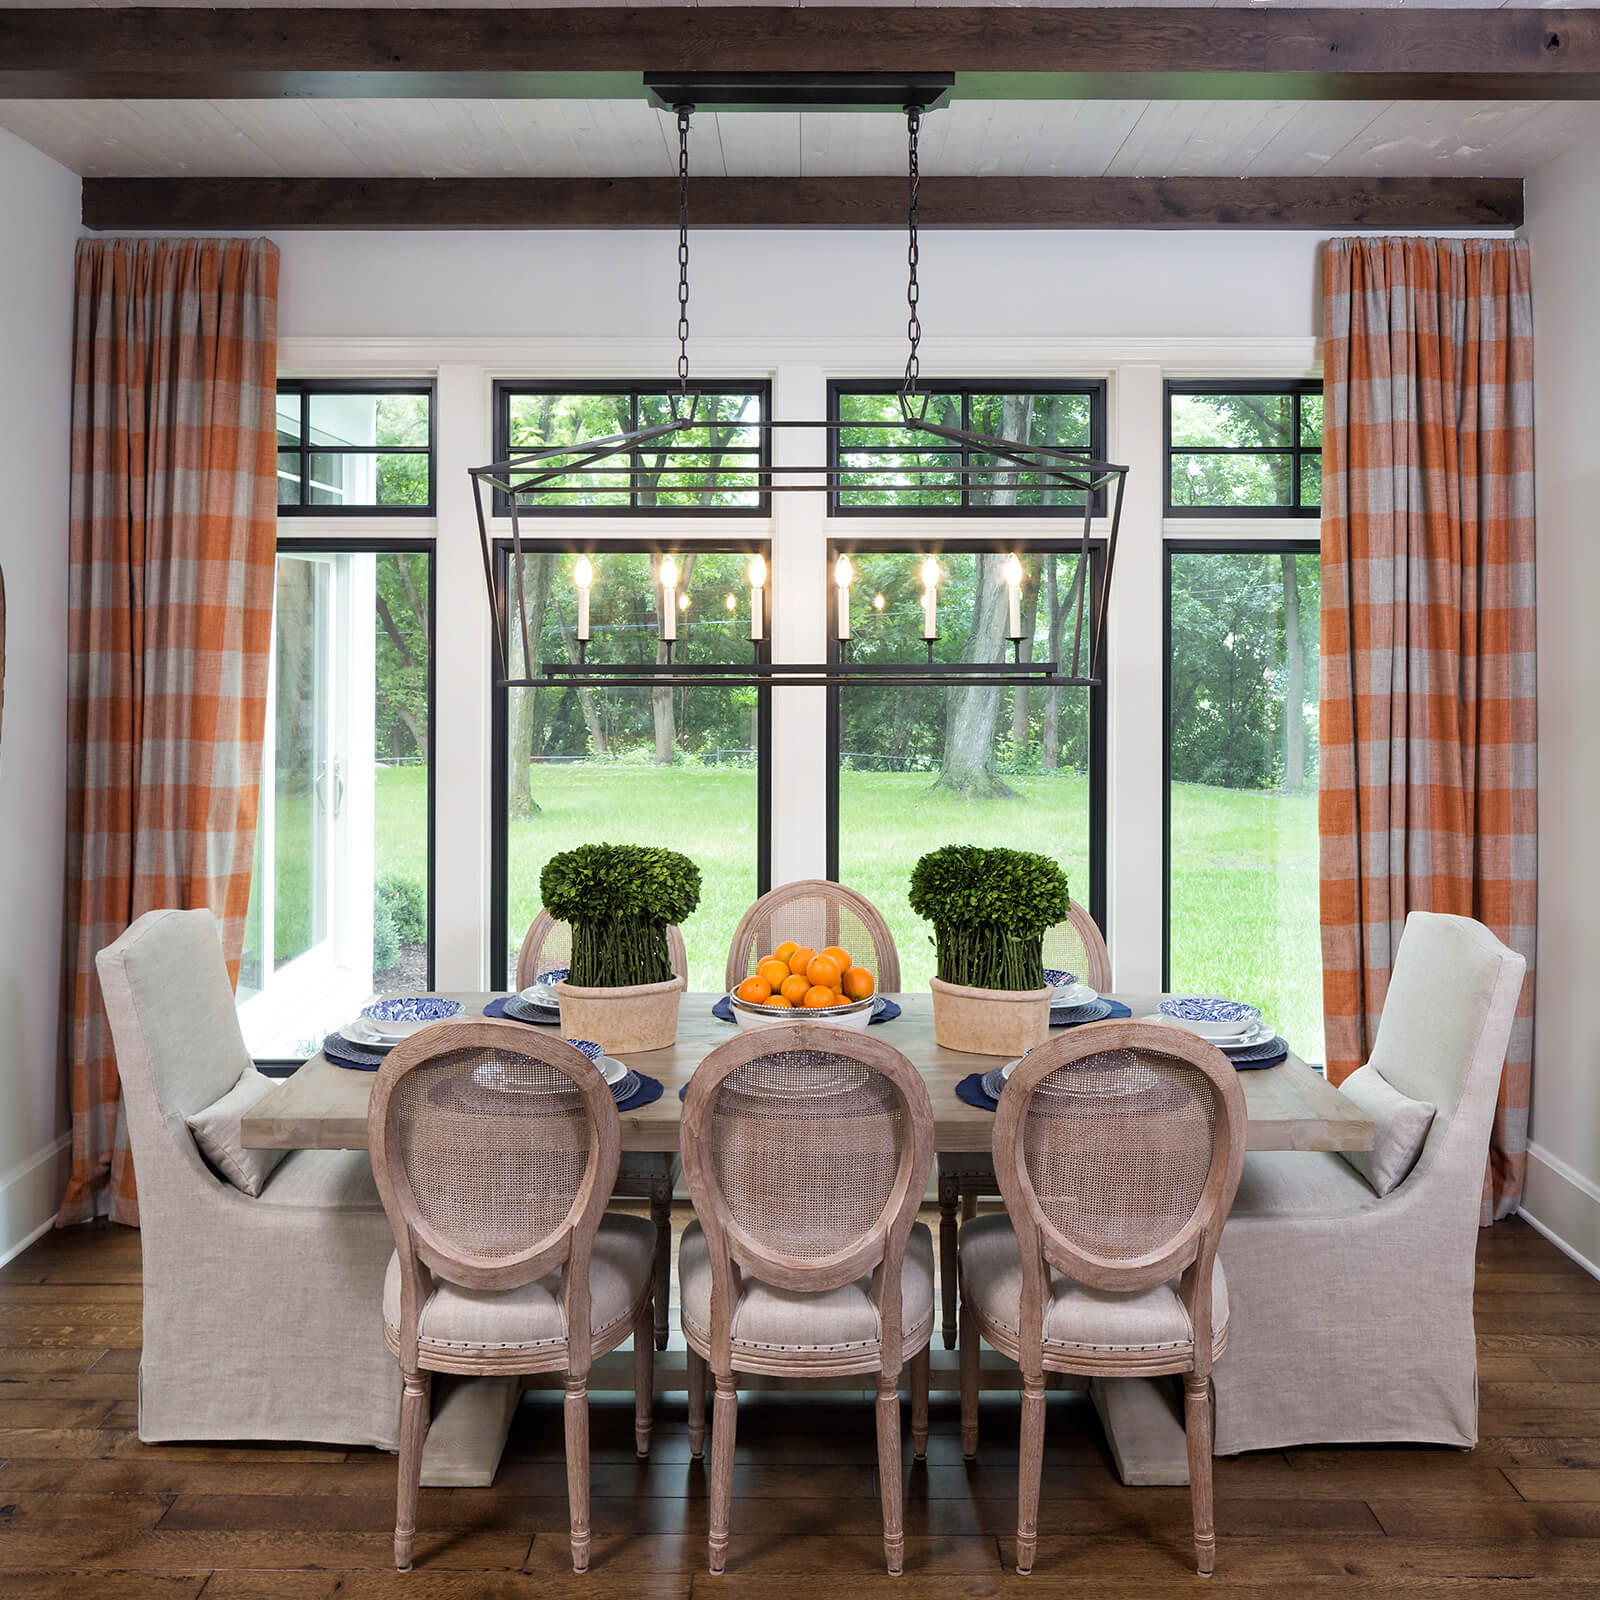 Dining room with Marvin Signature Ultimate Casement Windows